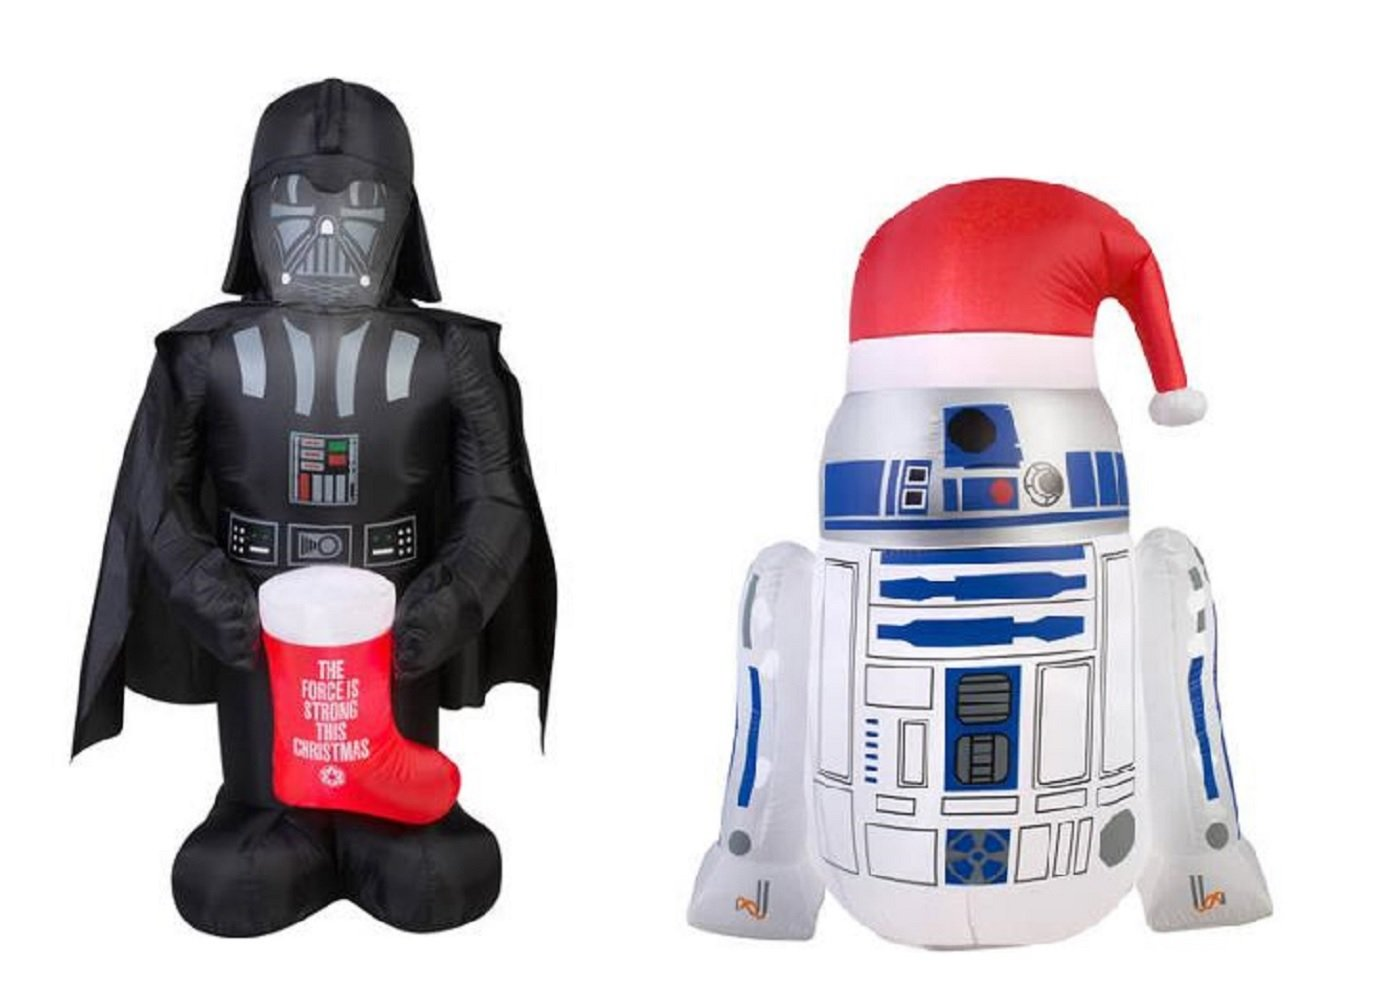 Amazon.com: Star Wars Airblown Inflatable Christmas Decorations Lawn ...